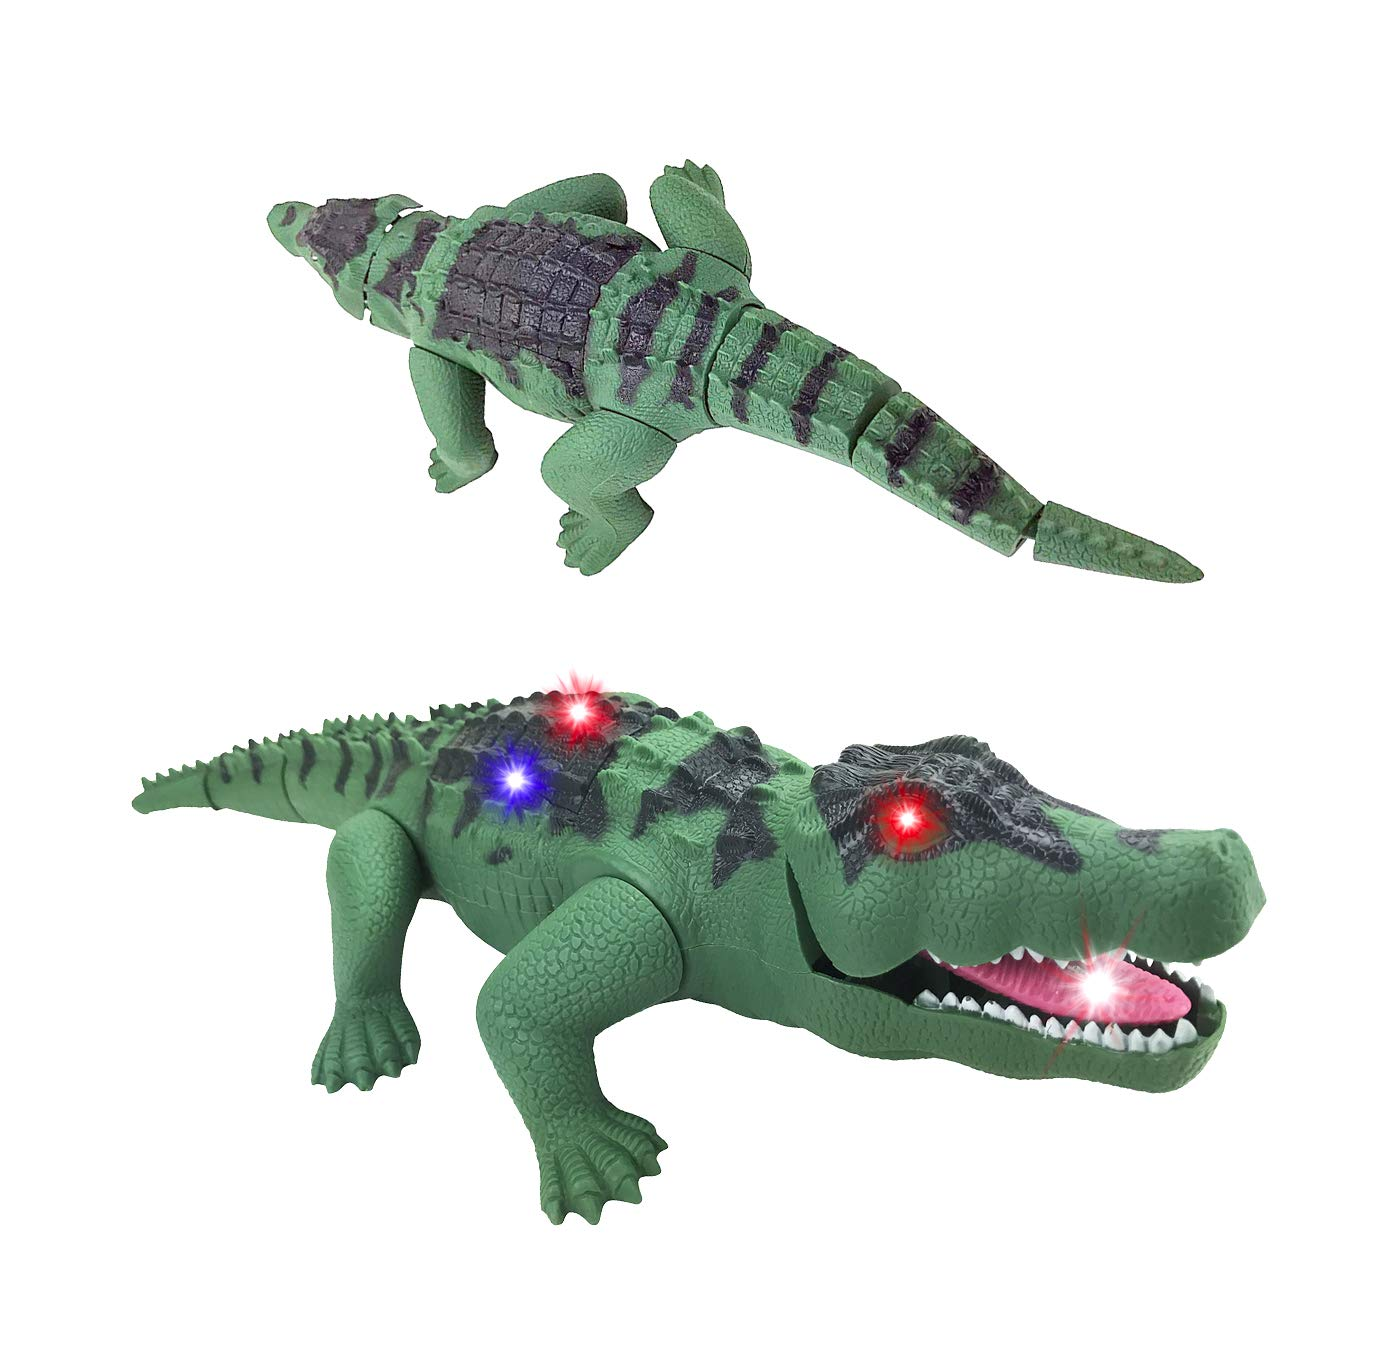 Liberty Imports Crocodile Toy Battery Operated 16'' Alligator with Moving Jaws, Lights and Realistic Sound by Liberty Imports (Image #5)